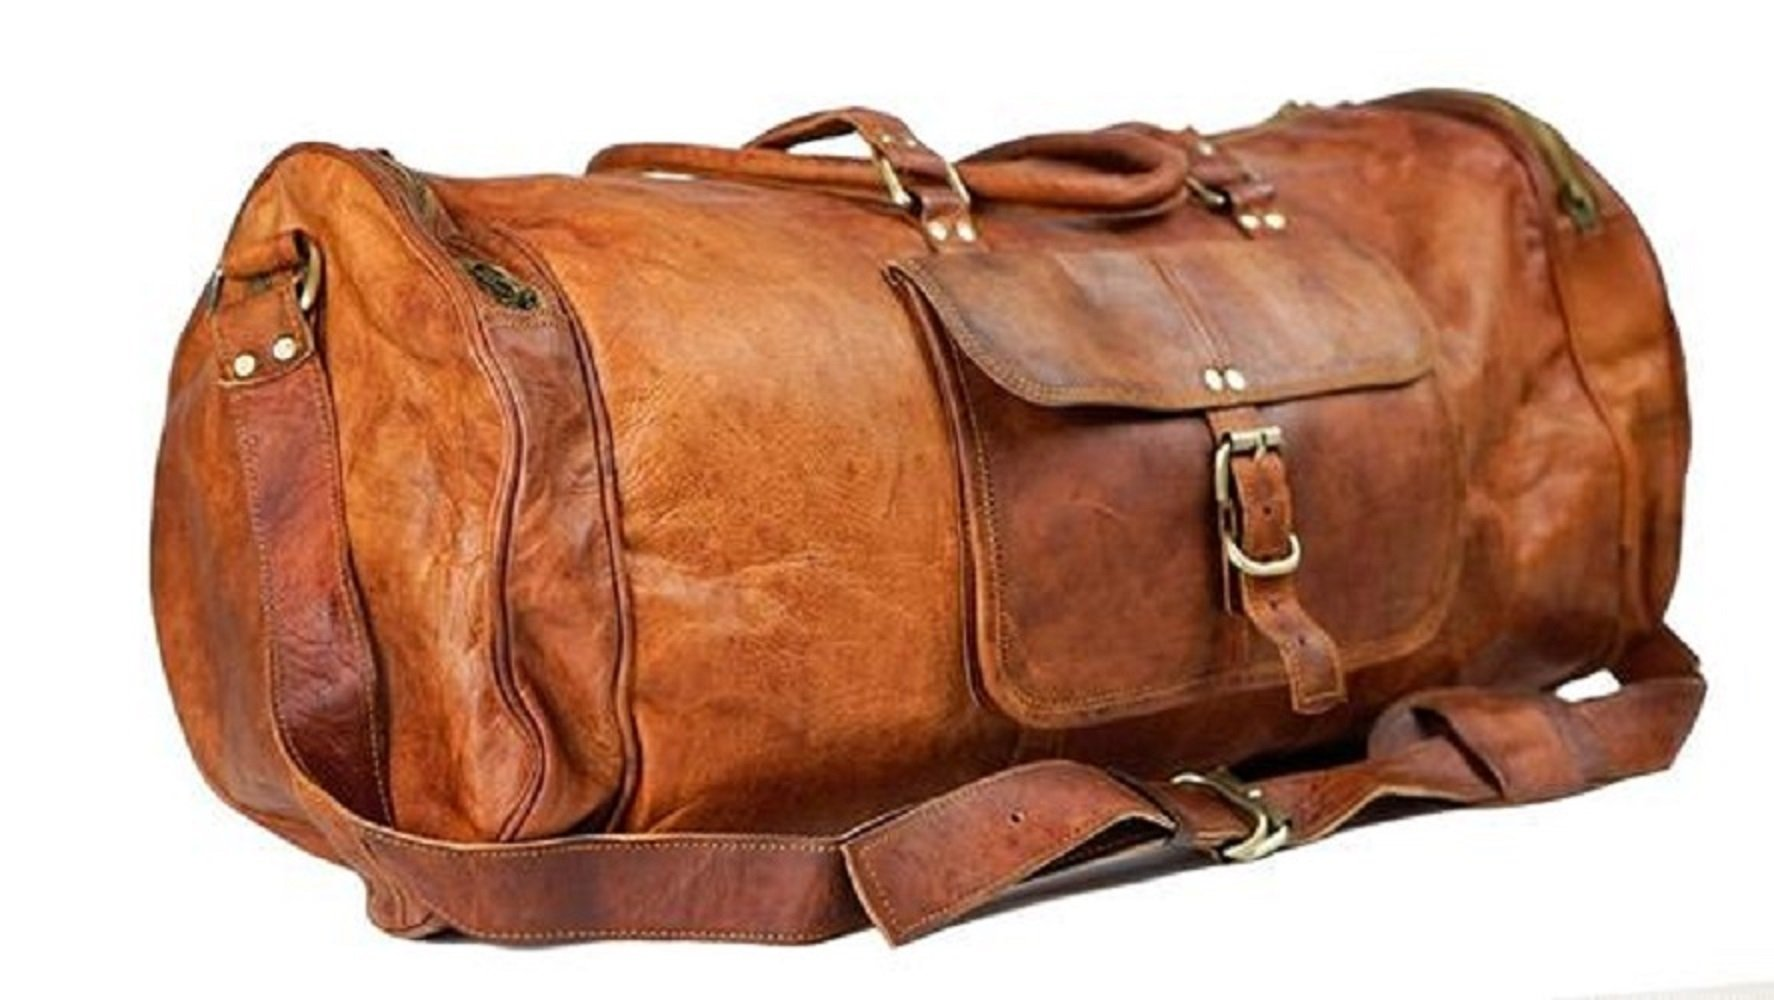 TUZECH Pure Light-weight Vintage Leather bag 22 inch Duffel Carry Portable Bag